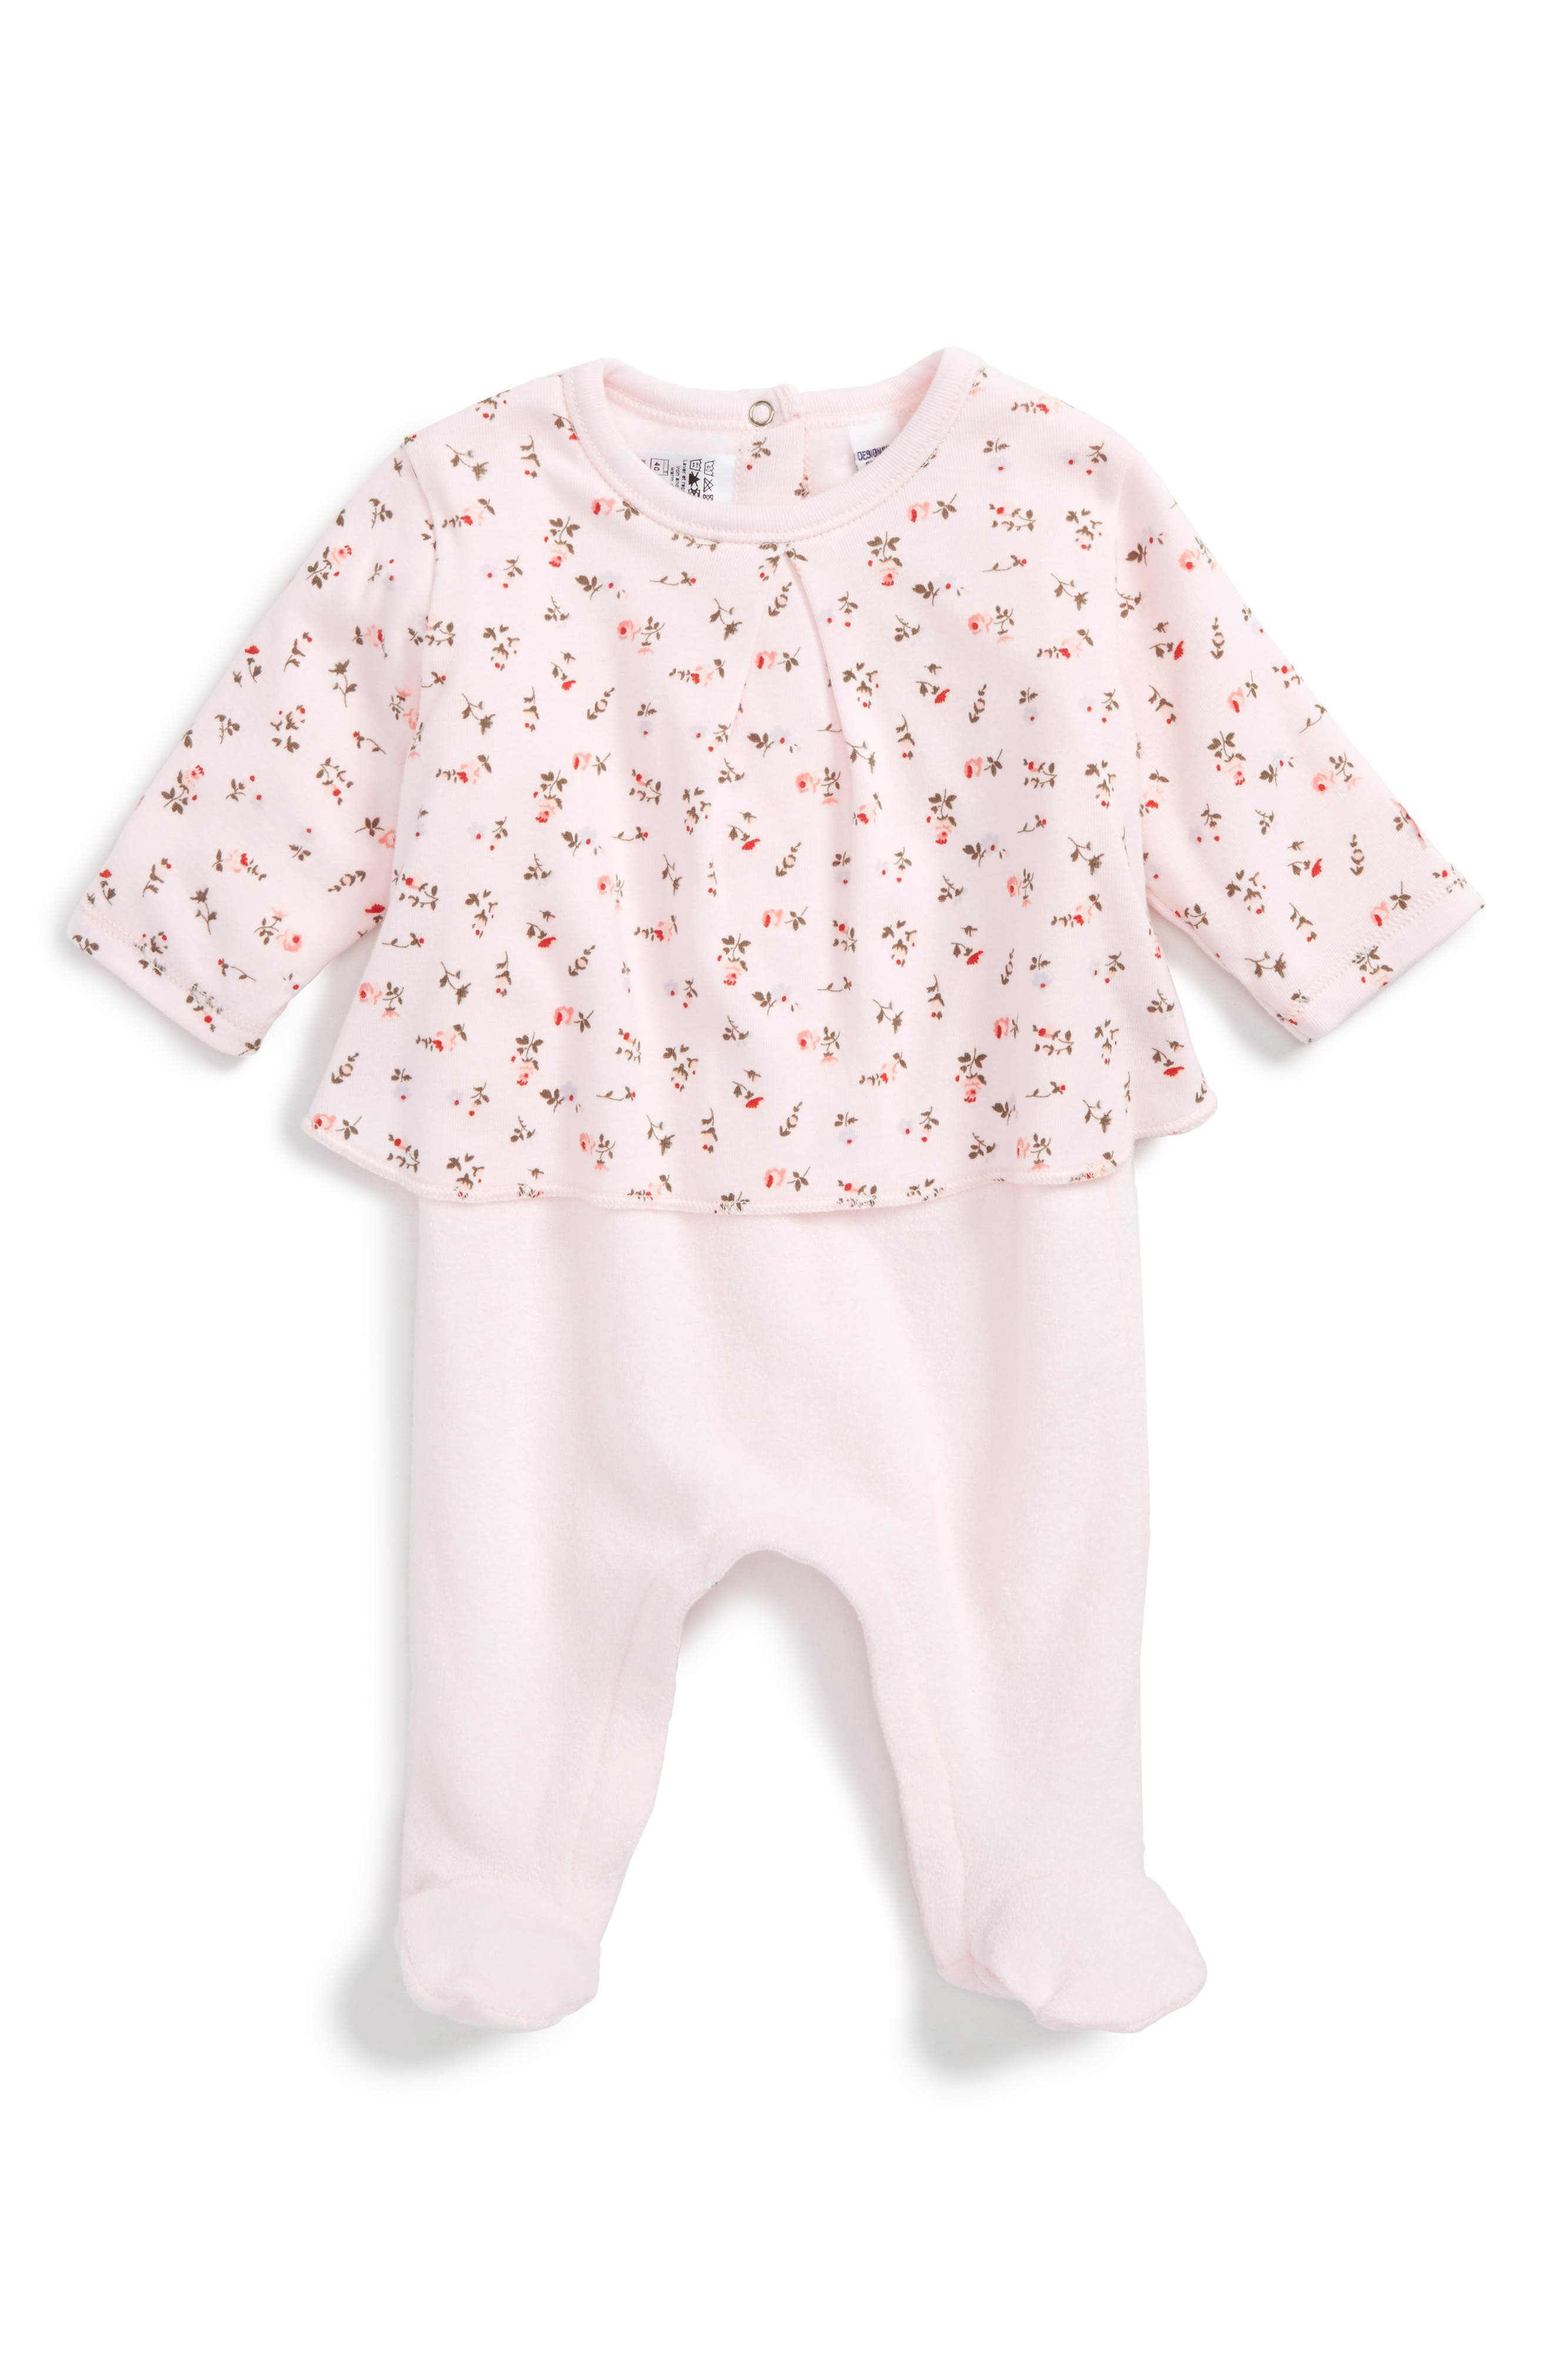 Alternate Image 1 Selected - Petit Bateau French Terry Footie (Baby Girls)